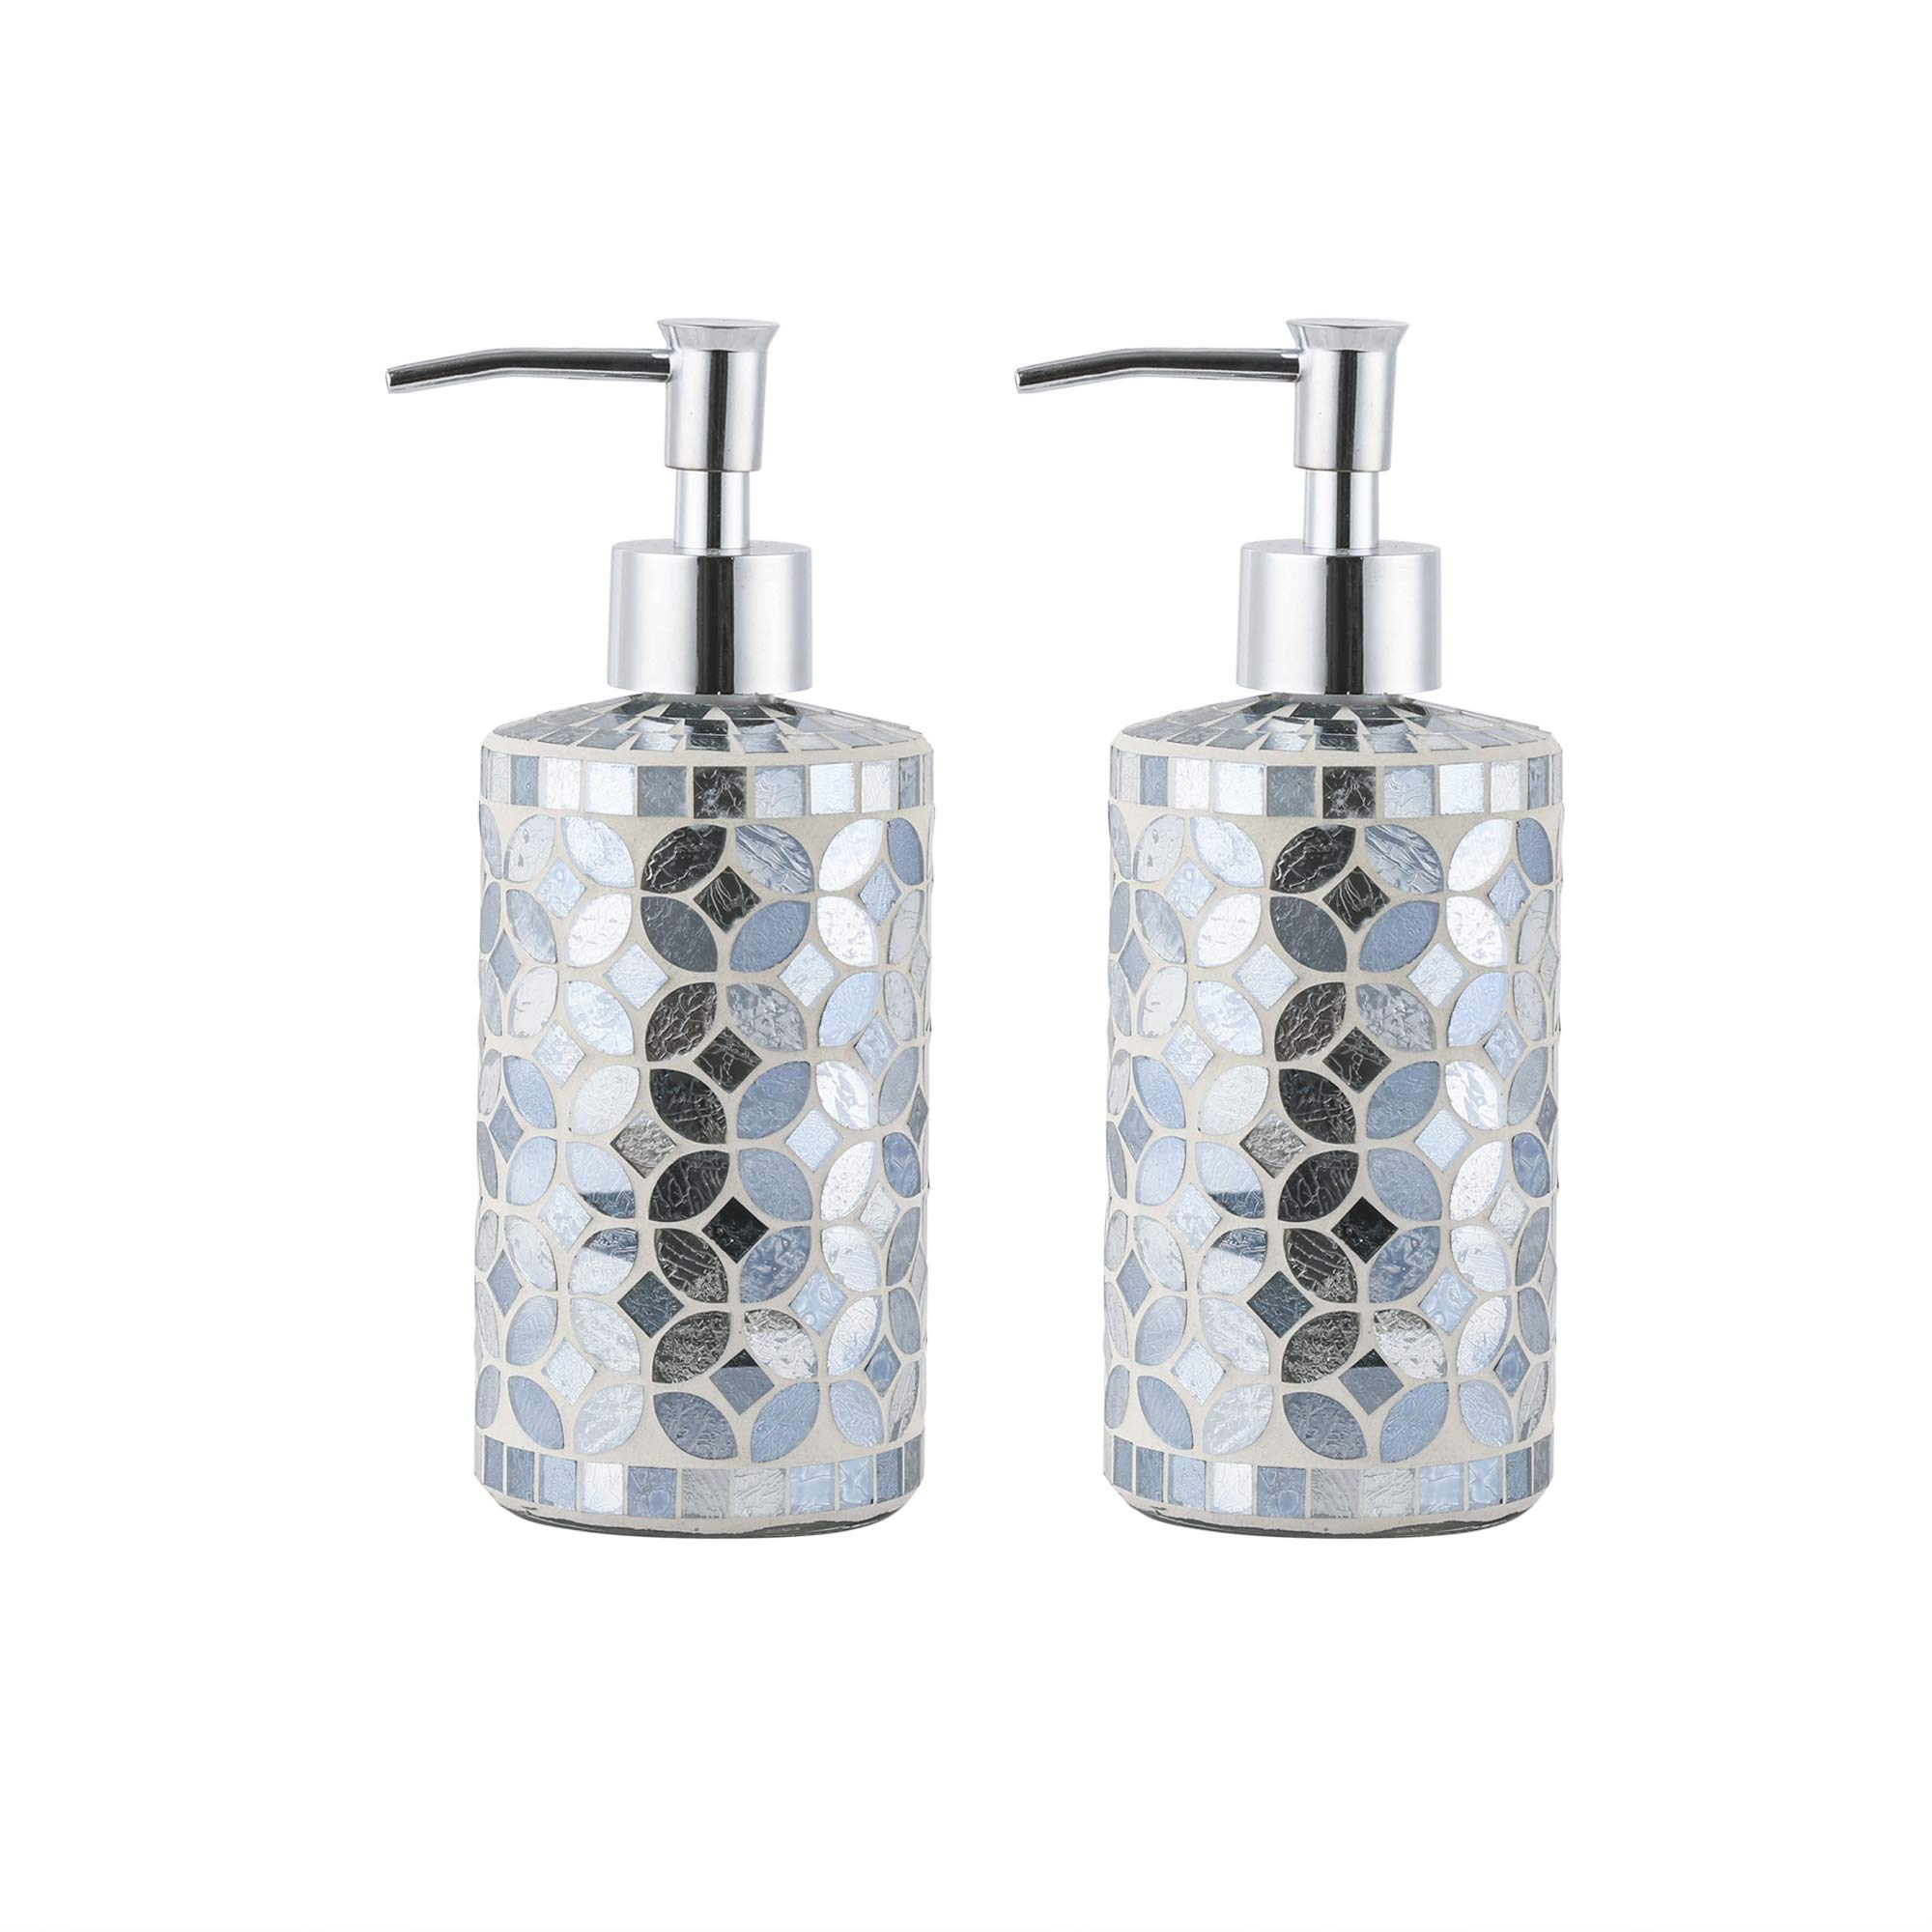 WH Housewares Set of 2 Soap Dispenser-Lotion Bottle-12OZ-Mosaic Glass with Chrome Plated Plastic Pump(Blue Ink)